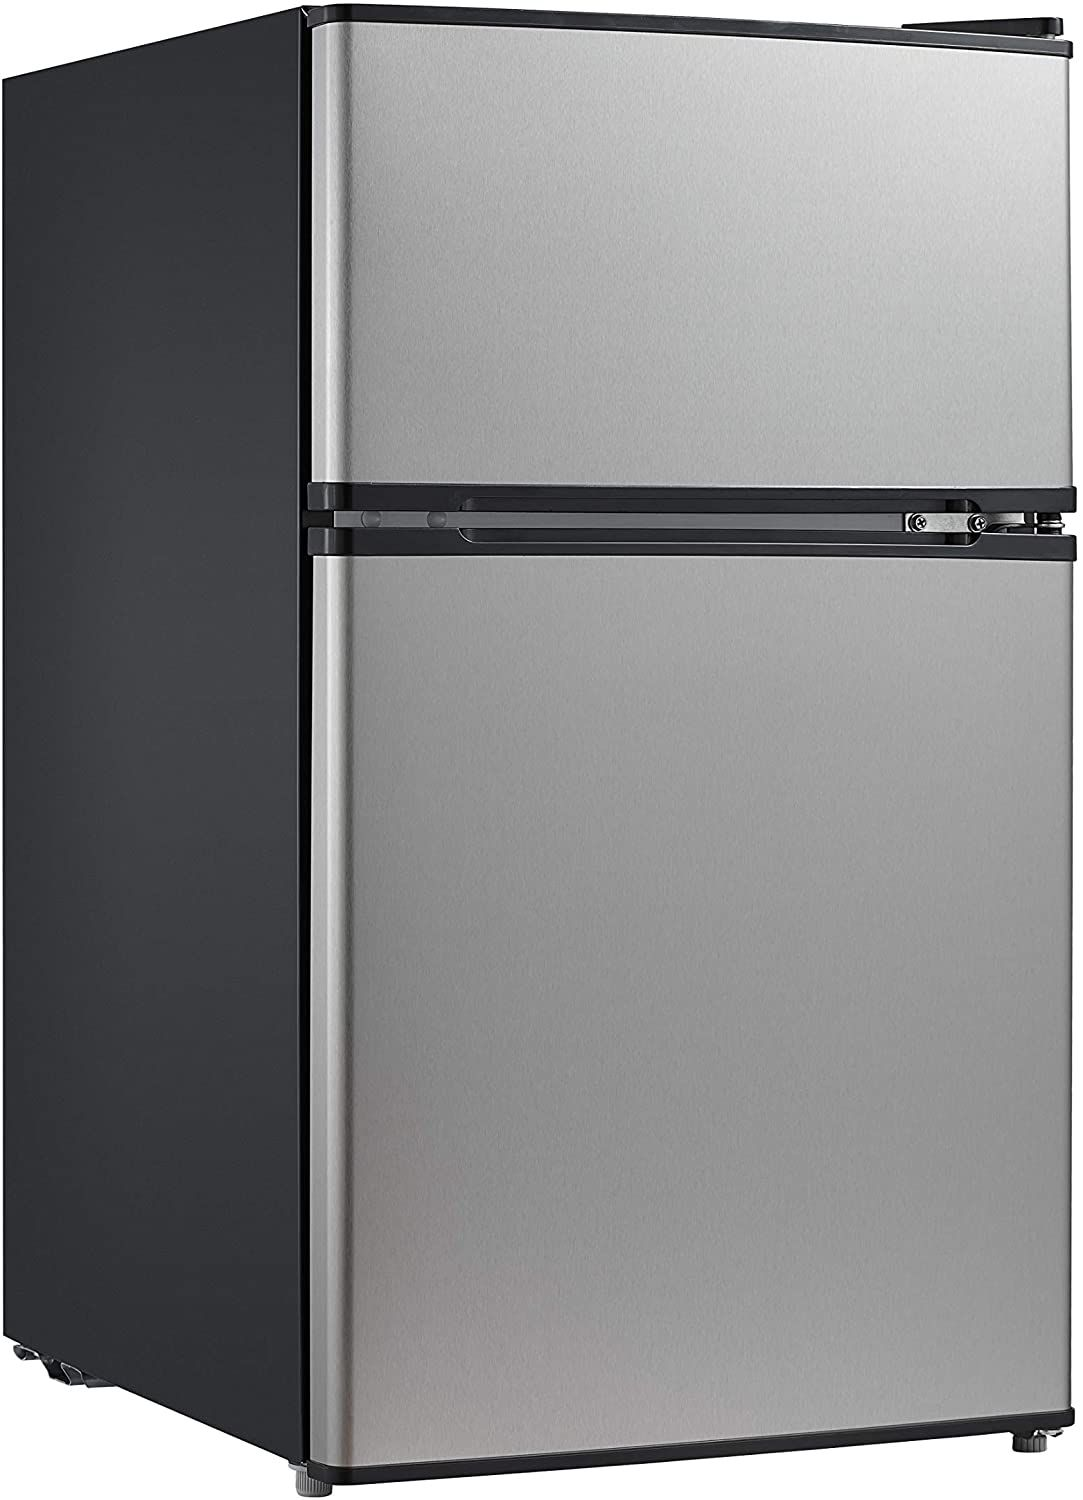 The Best Suggestions For High School Graduation Gifts Hairs Out Of Place In 2020 Compact Refrigerator Refrigerator Glass Shelves